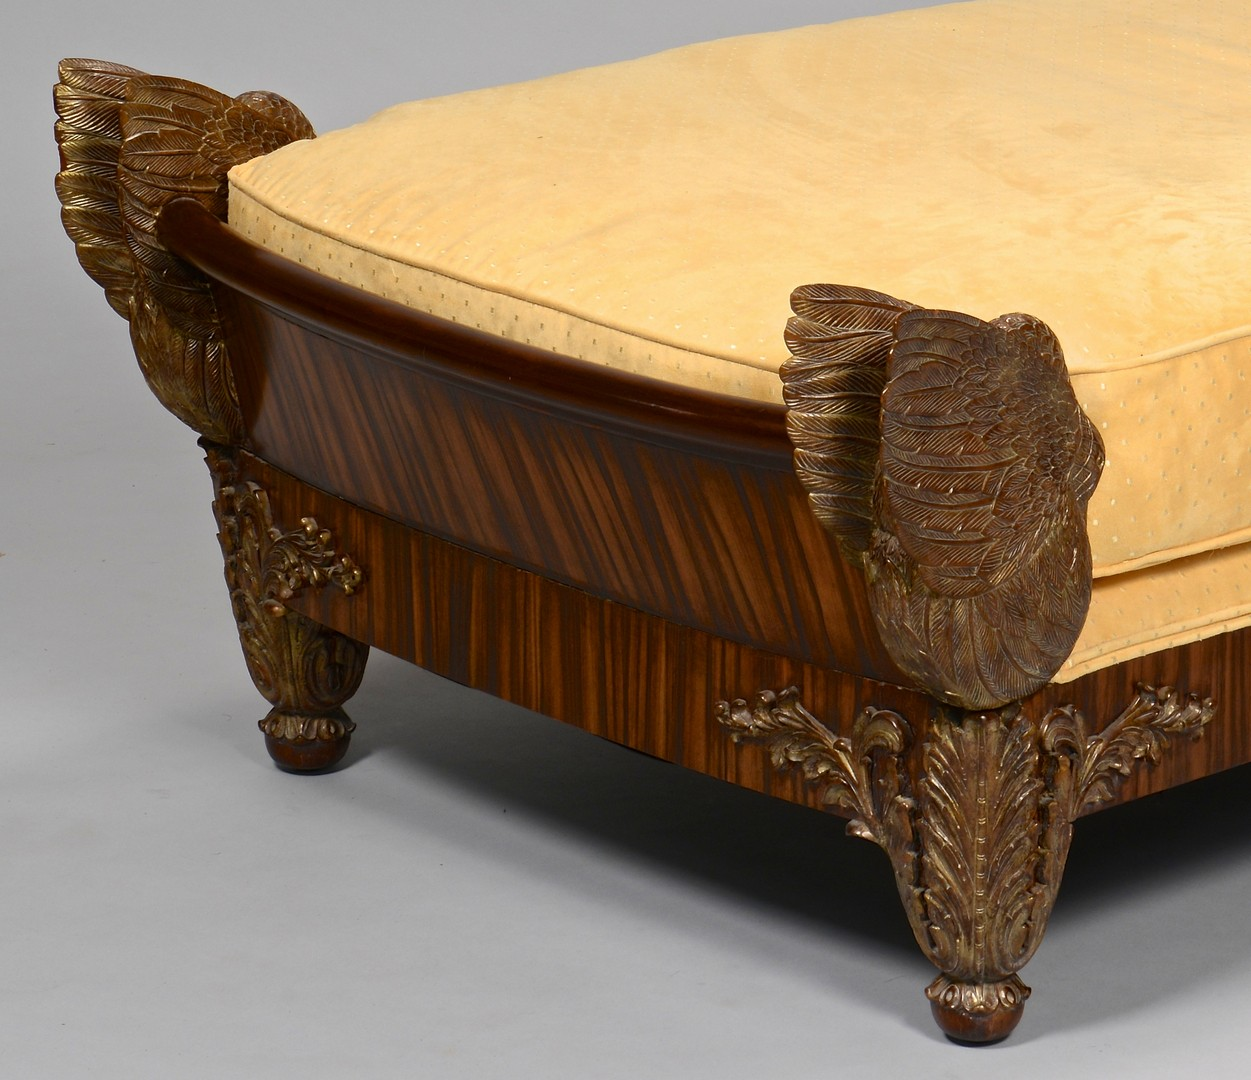 Lot 270: French Second Empire Swan Day Bed